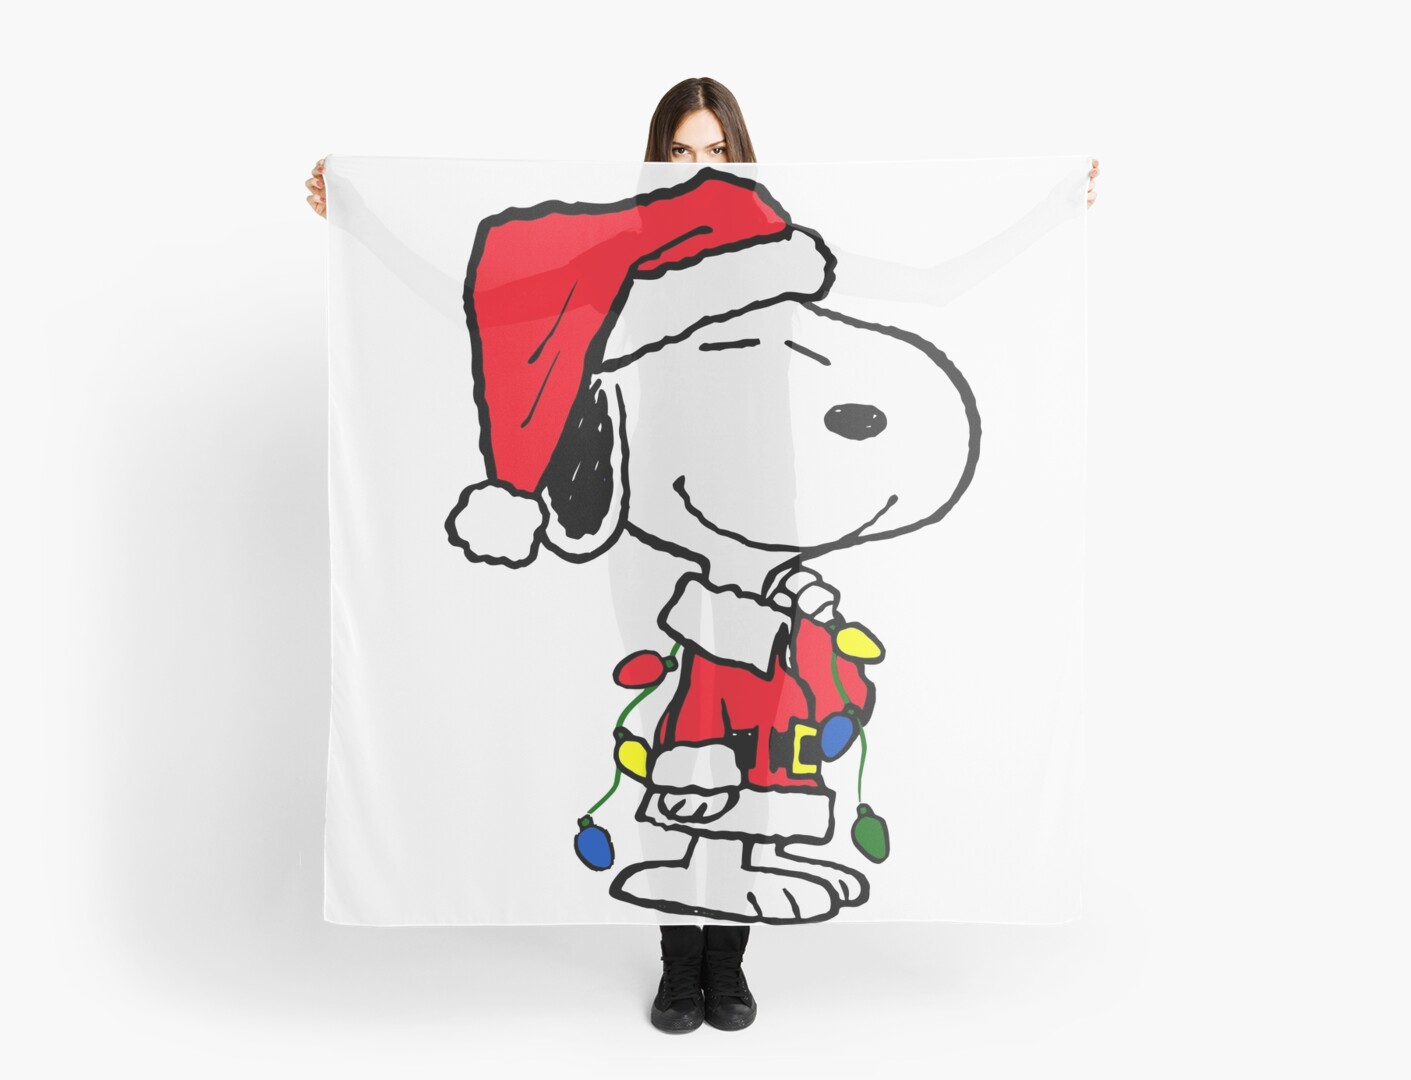 merry christmas snoopy by angelafrance - Merry Christmas Snoopy